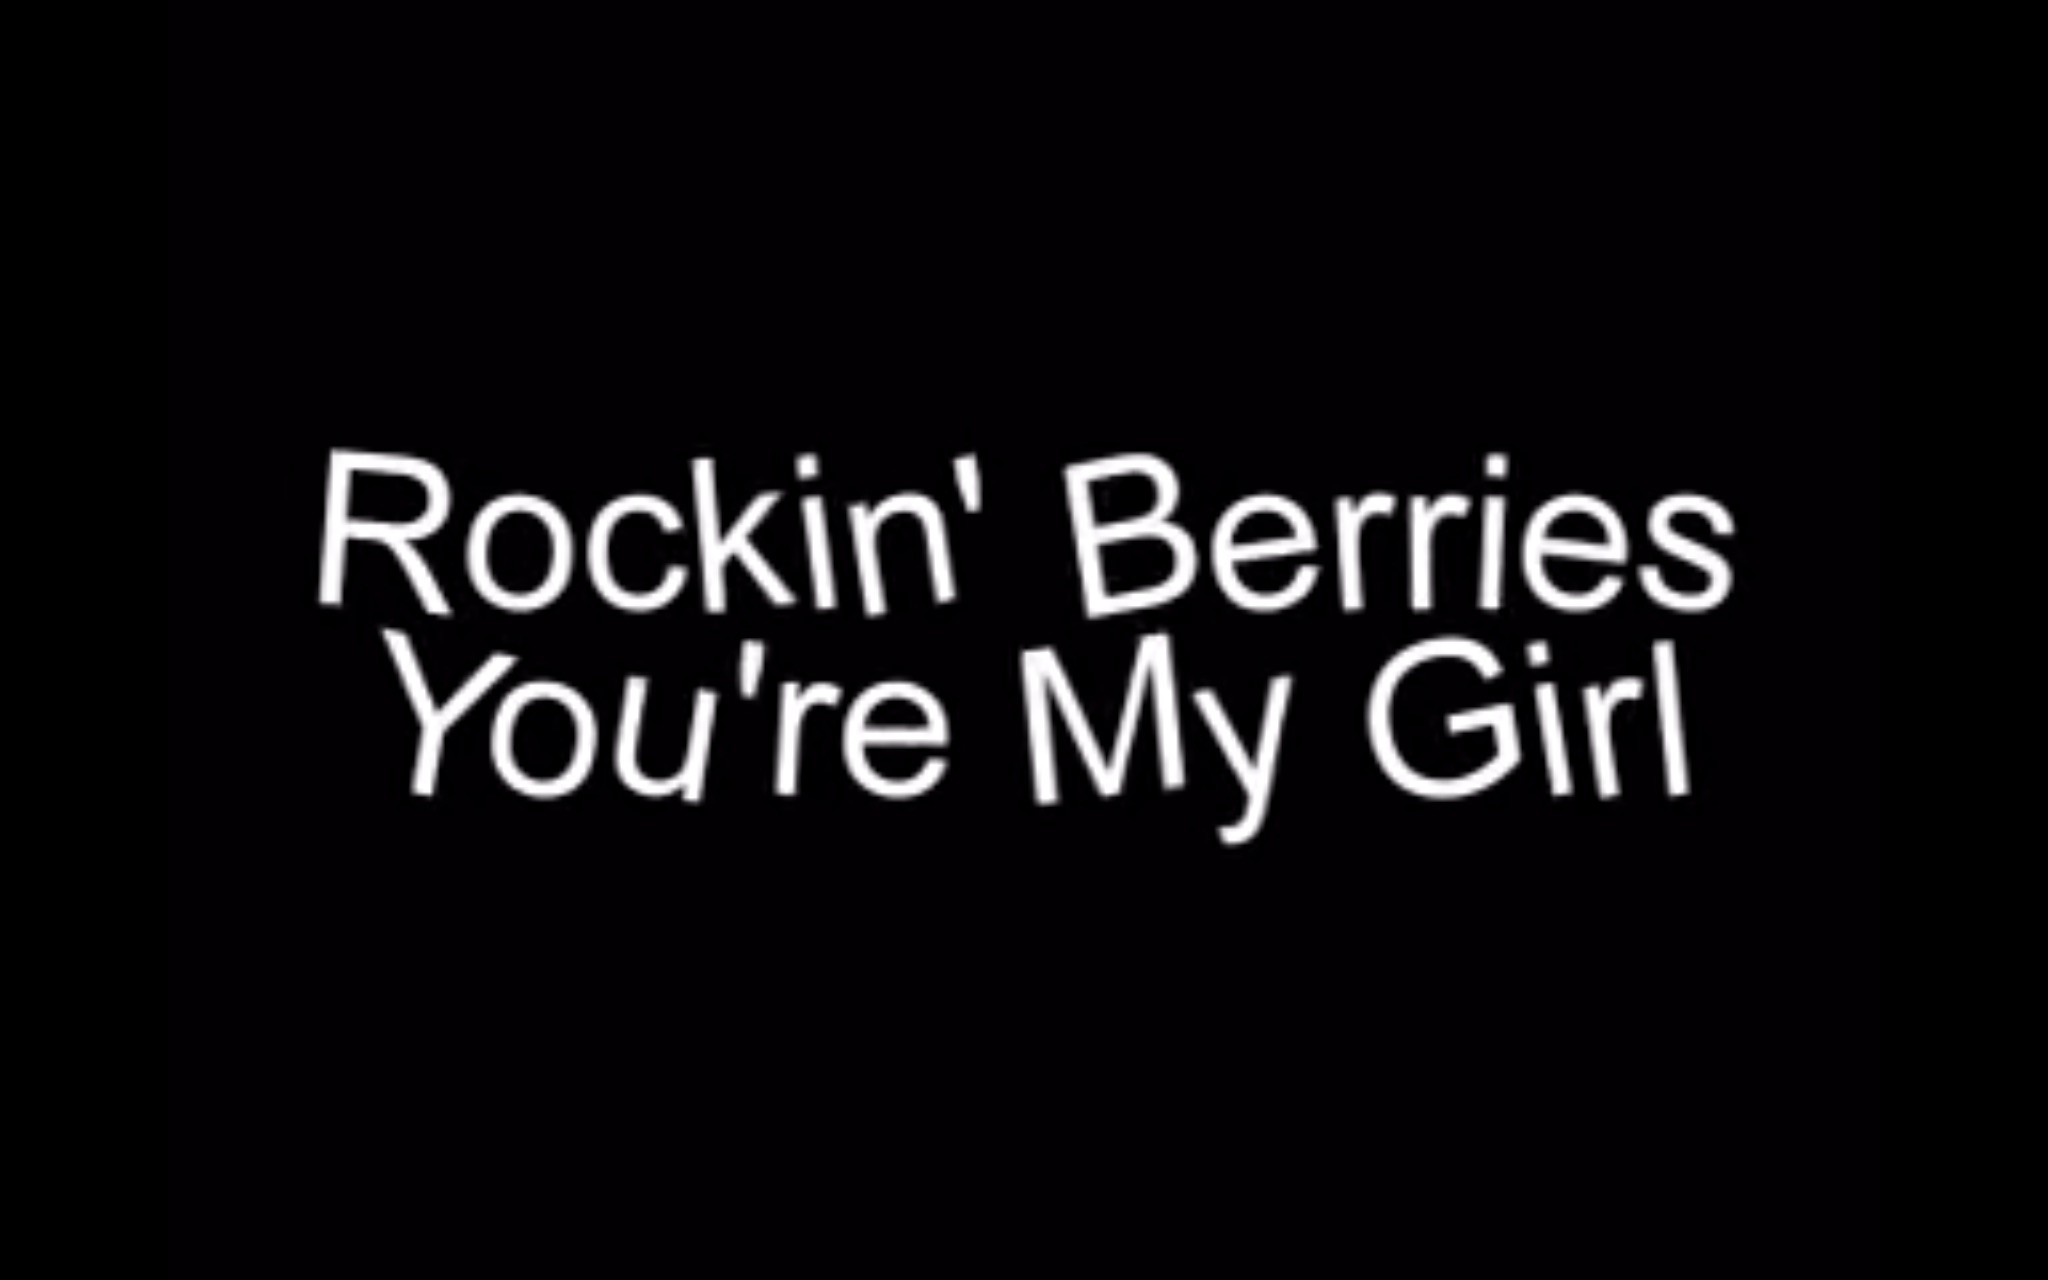 Song lyrics to You're My Girl, as performed by the Rockin' Berries